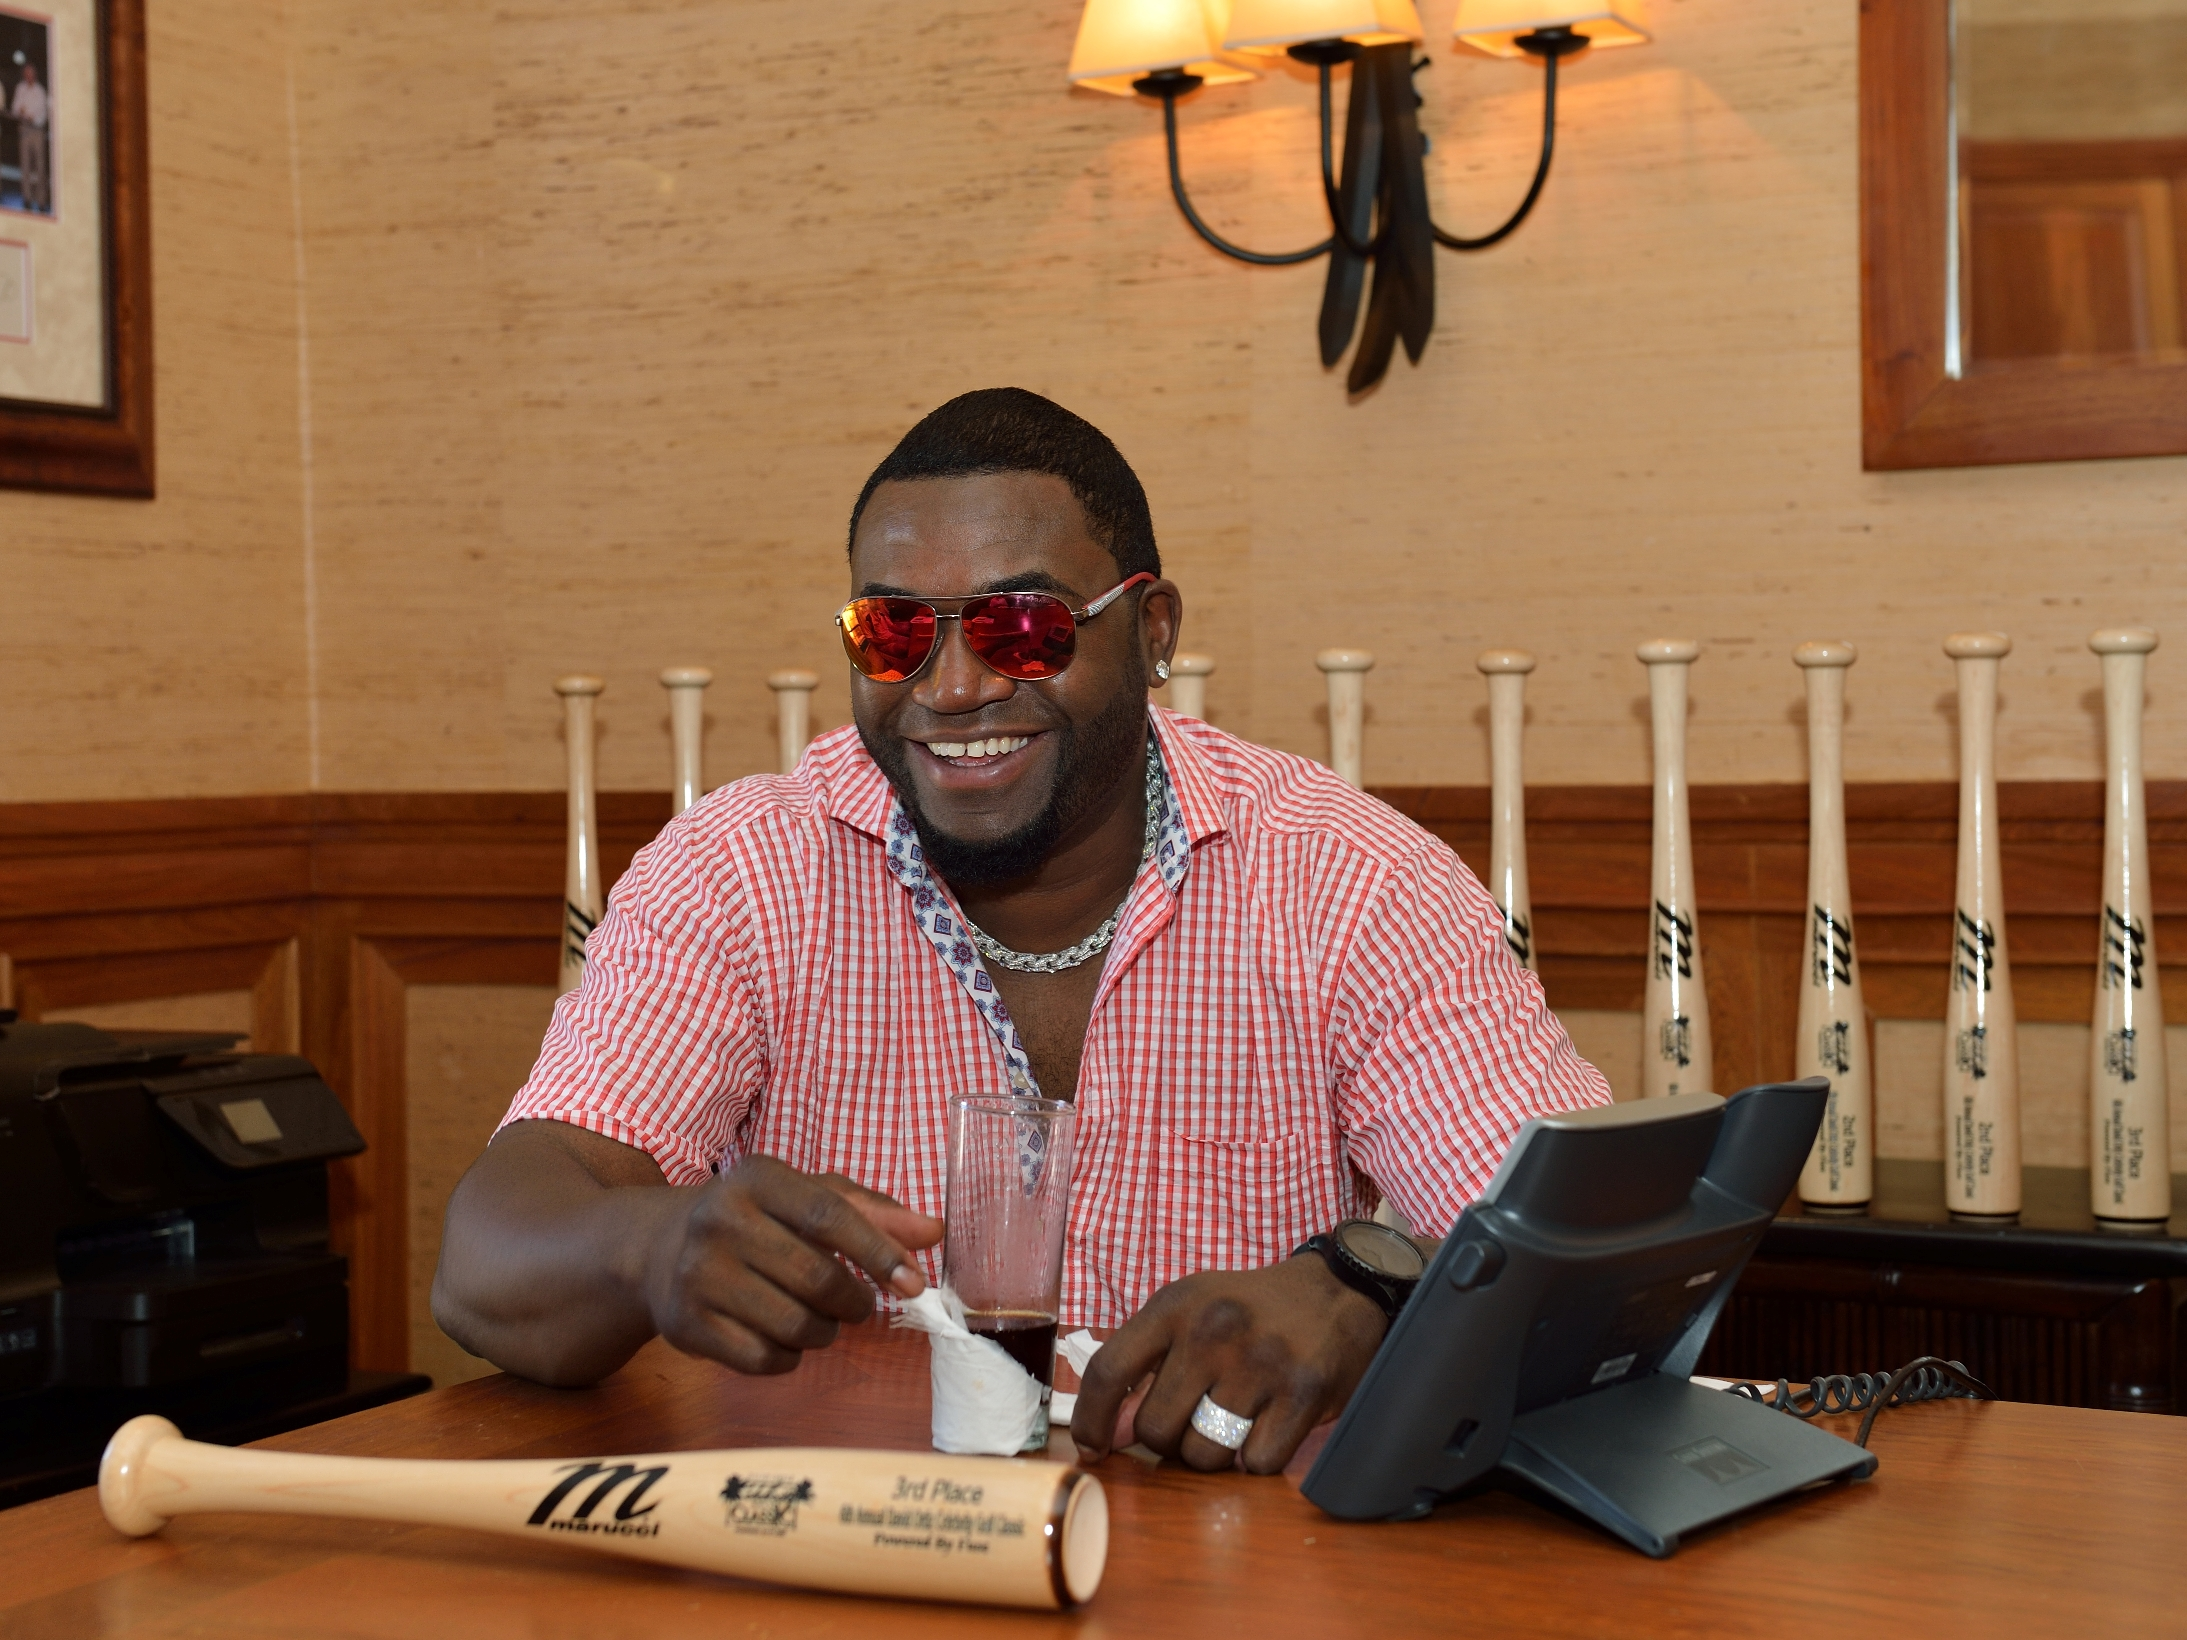 Auction Underway to Support David Ortiz Celebrity Golf Classic